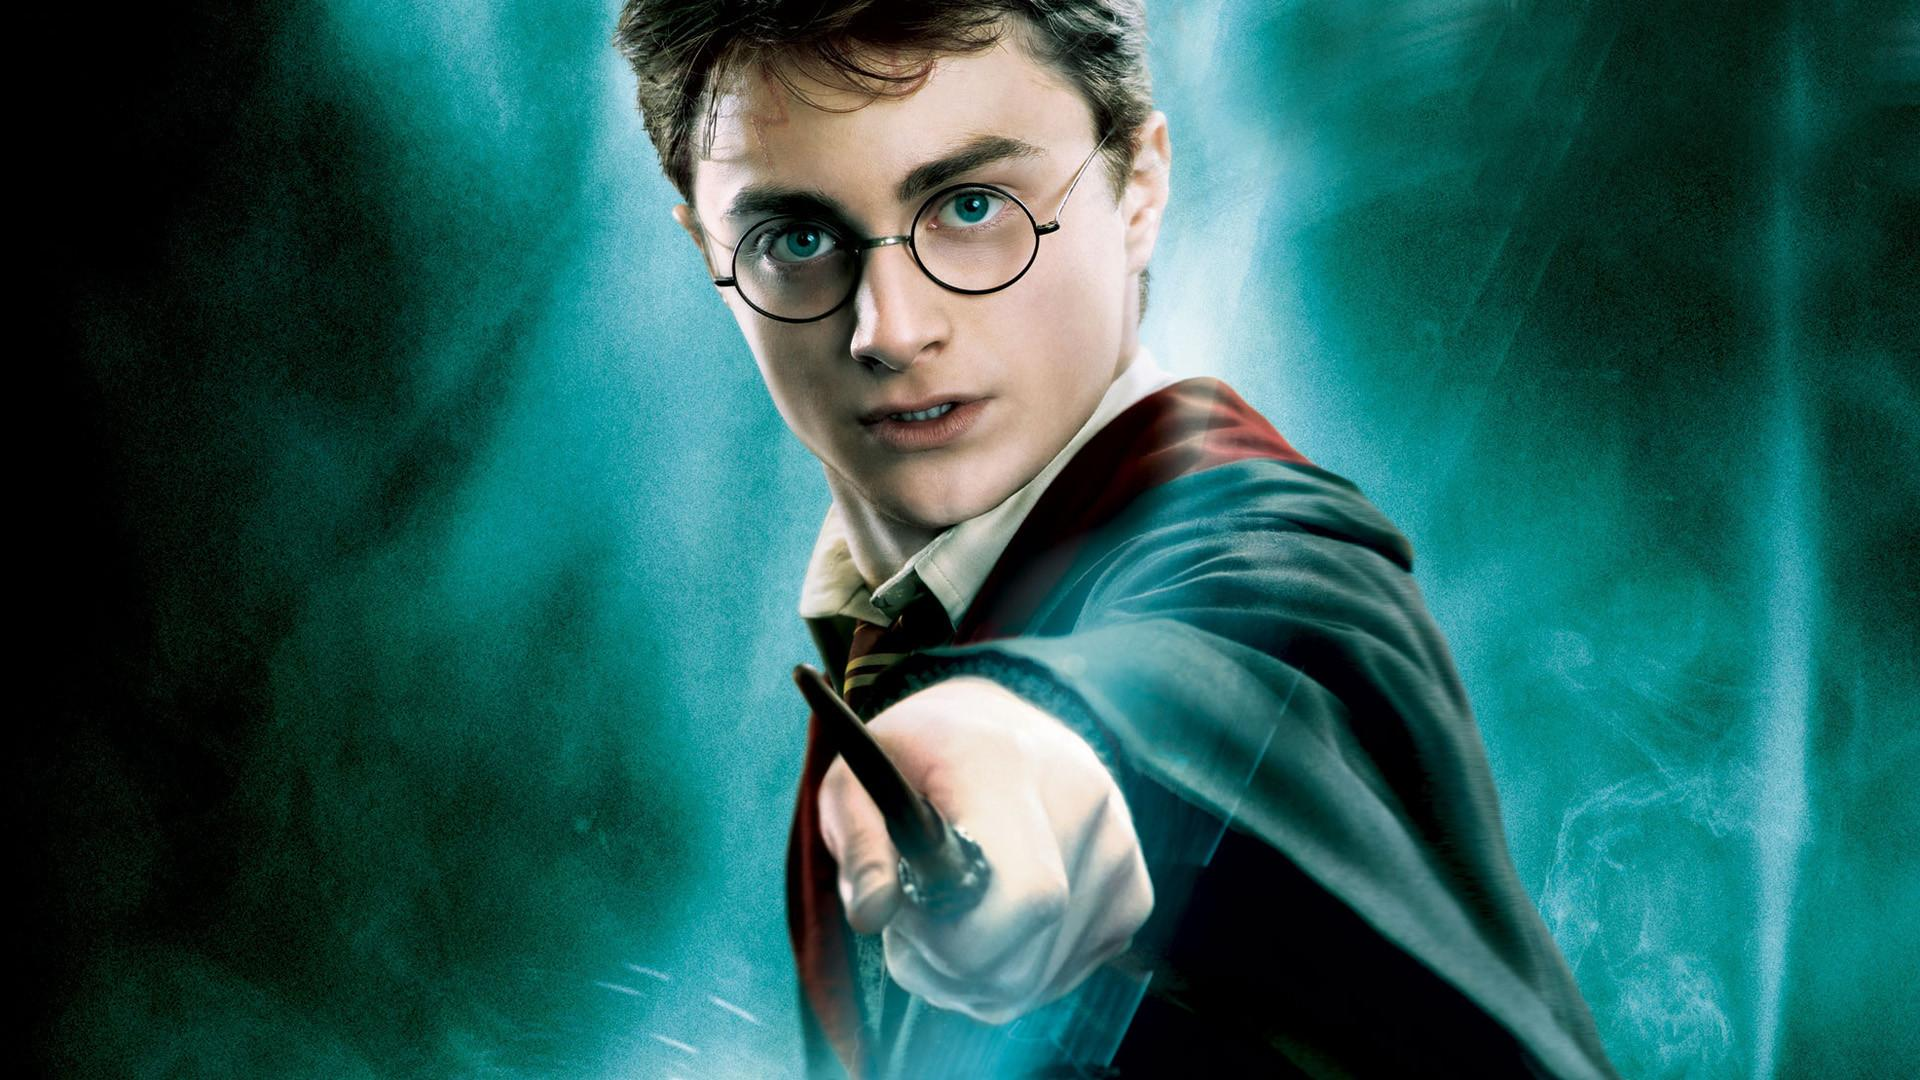 Daniel Radcliffe Hasn't Ruled Out A Return To 'Harry Potter'